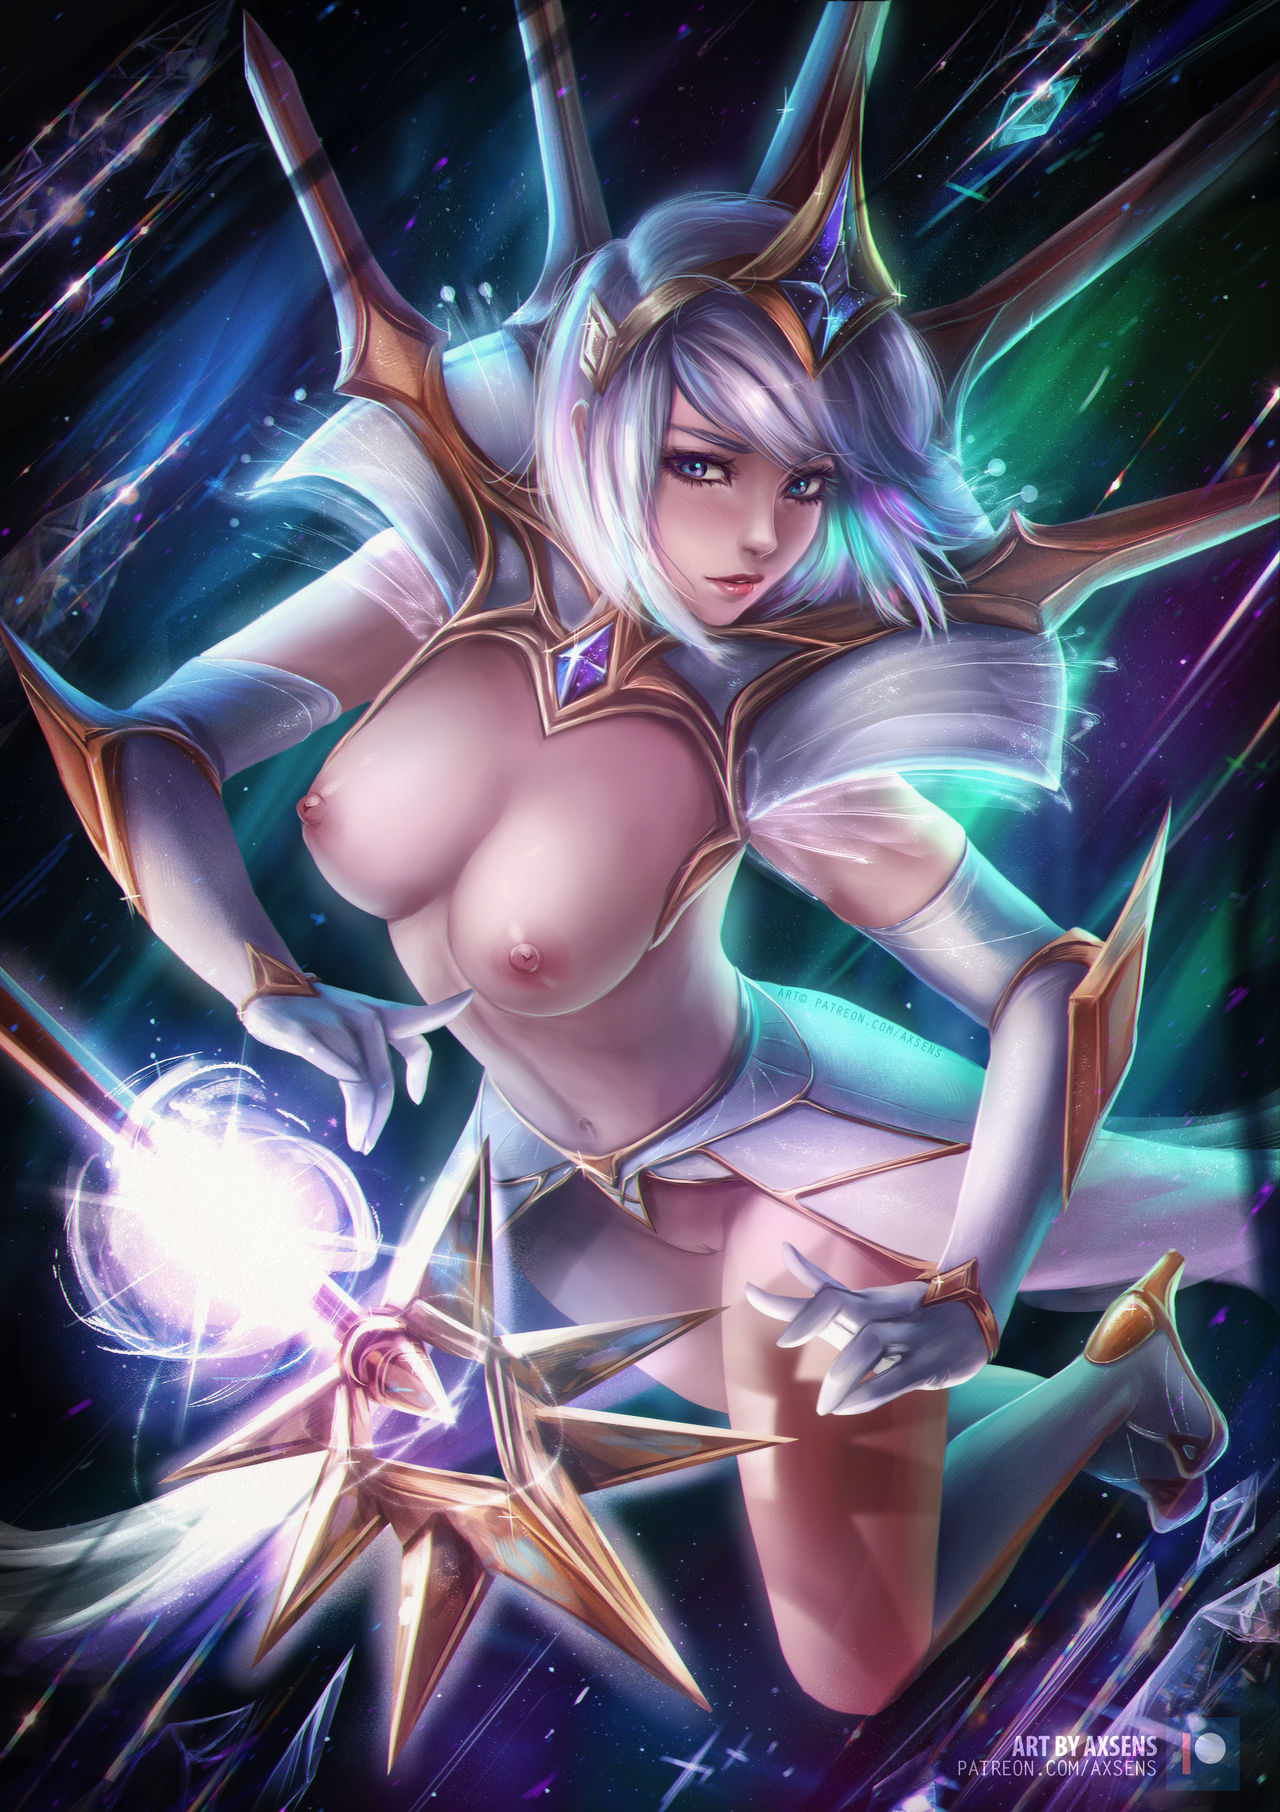 3151456 - Axsens League_of_Legends Luxanna_Crownguard